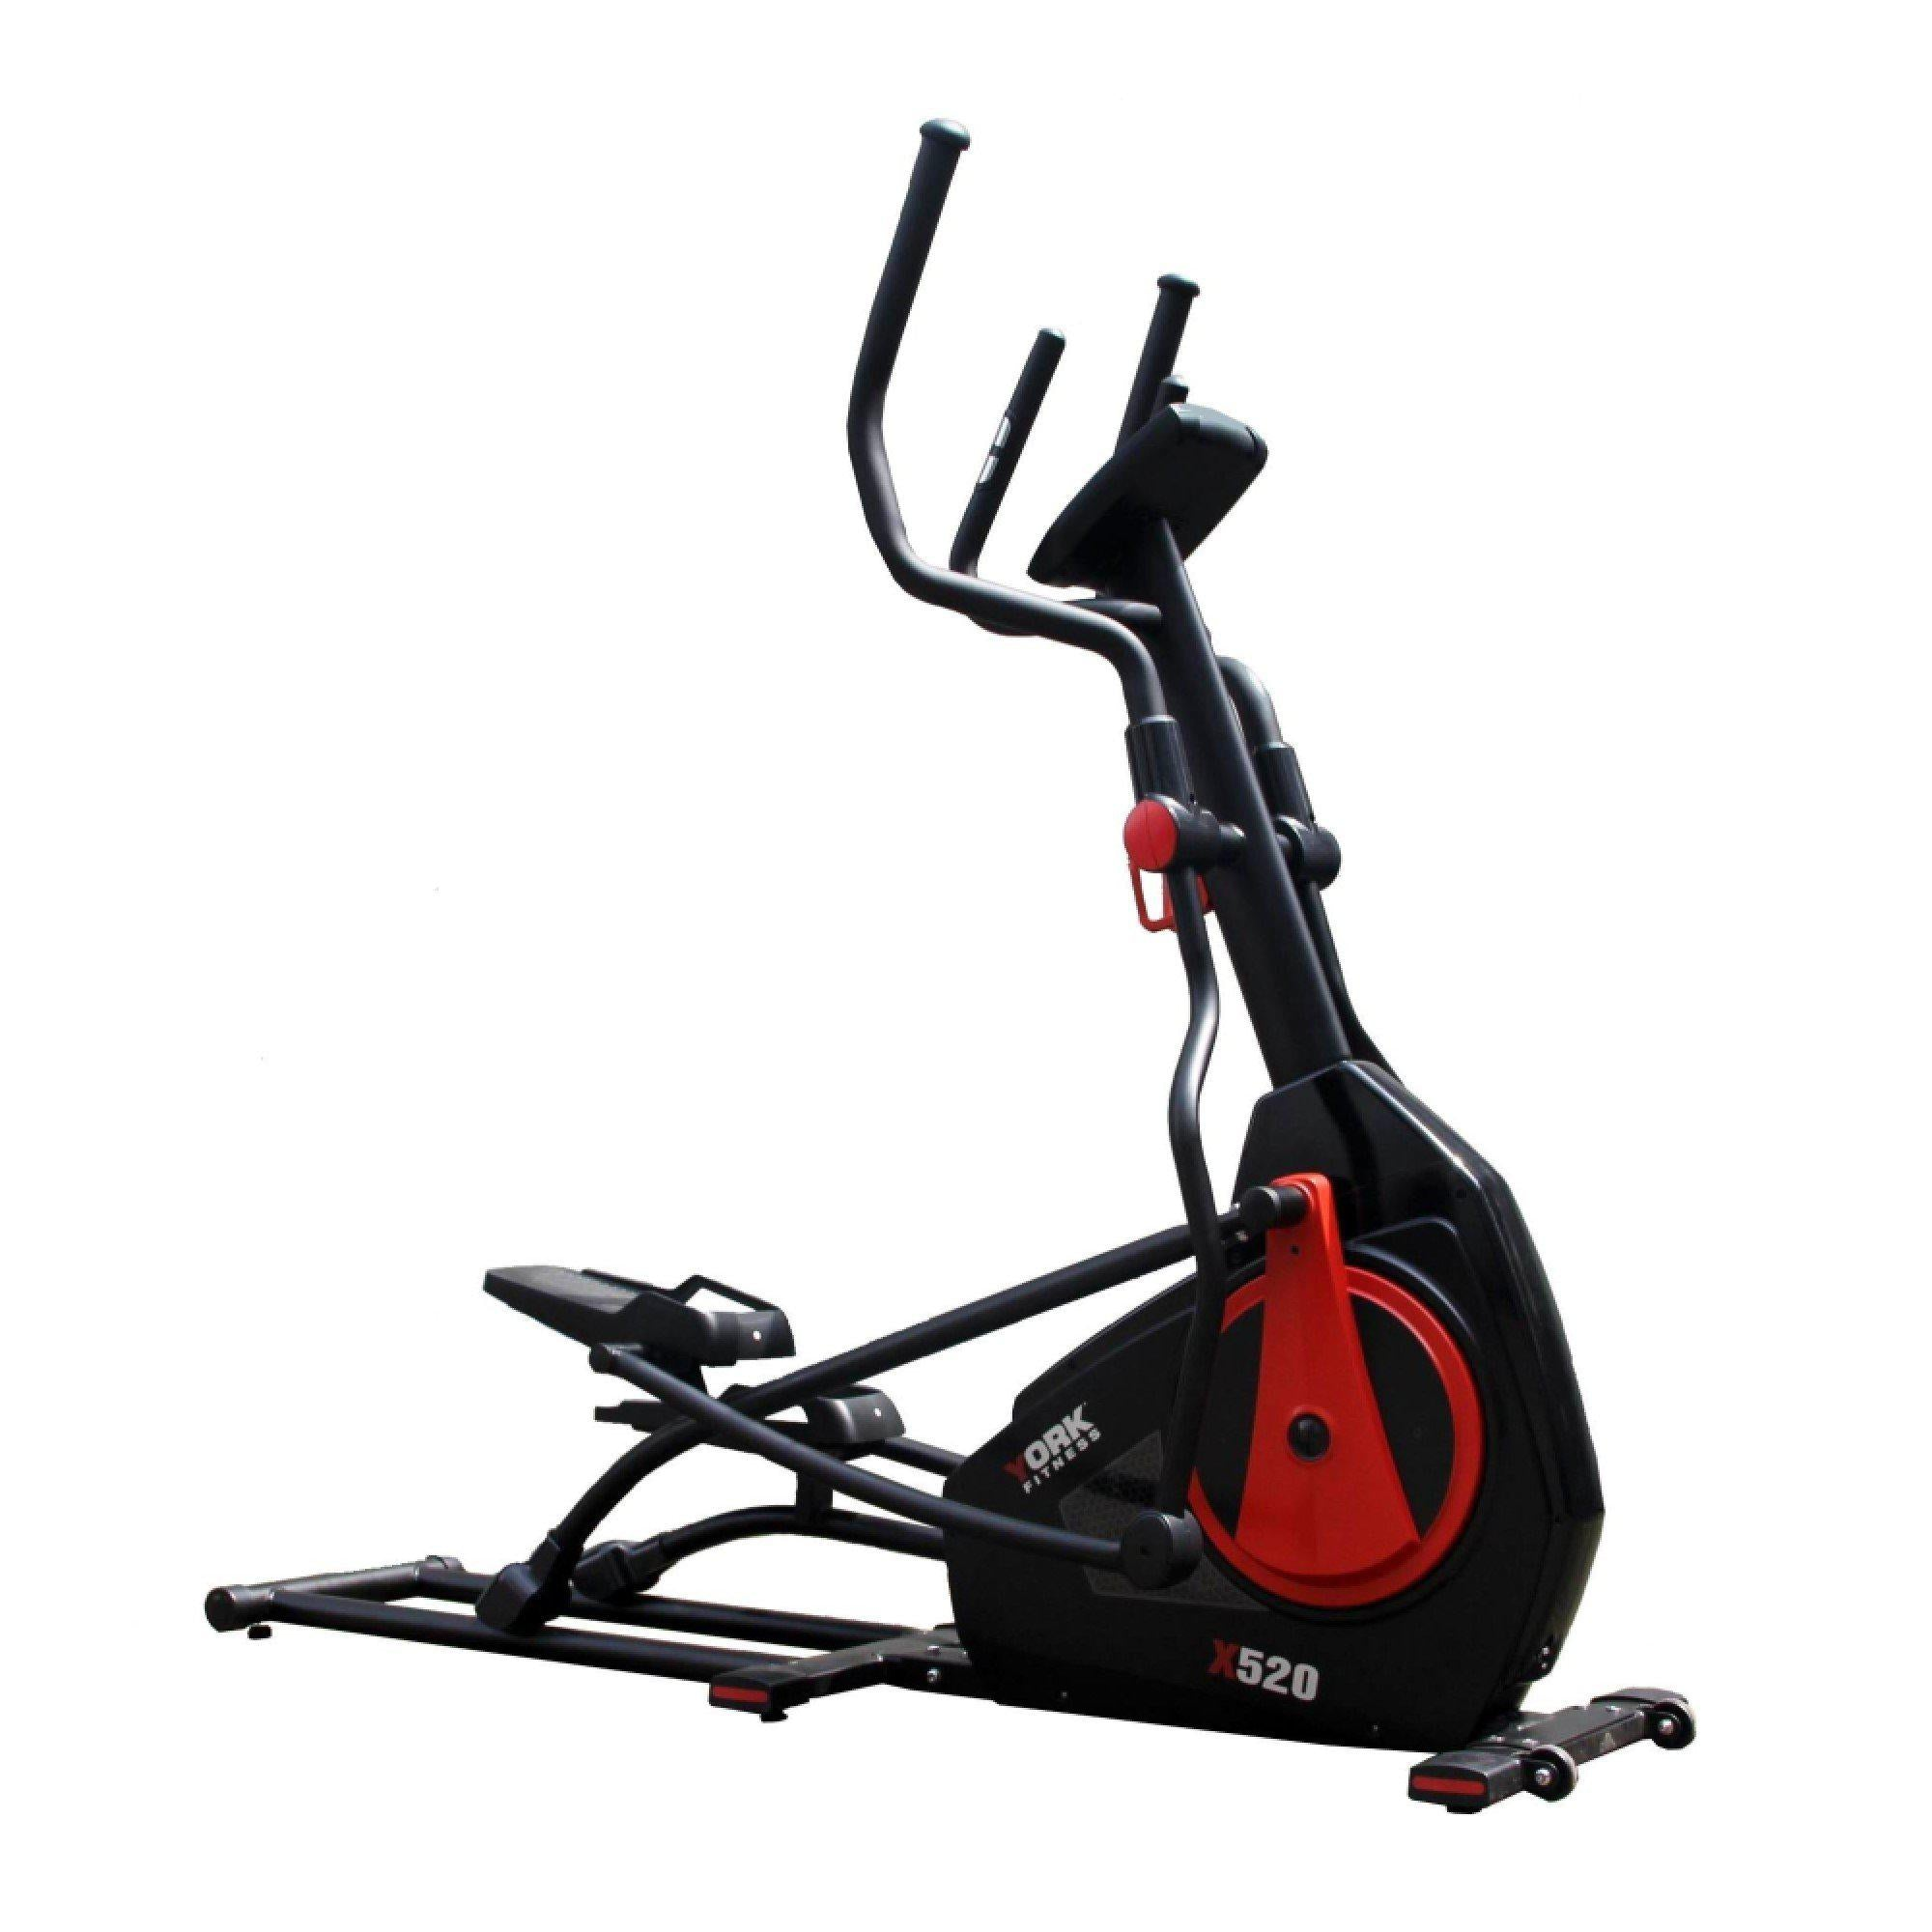 York X520 Cross Trainer